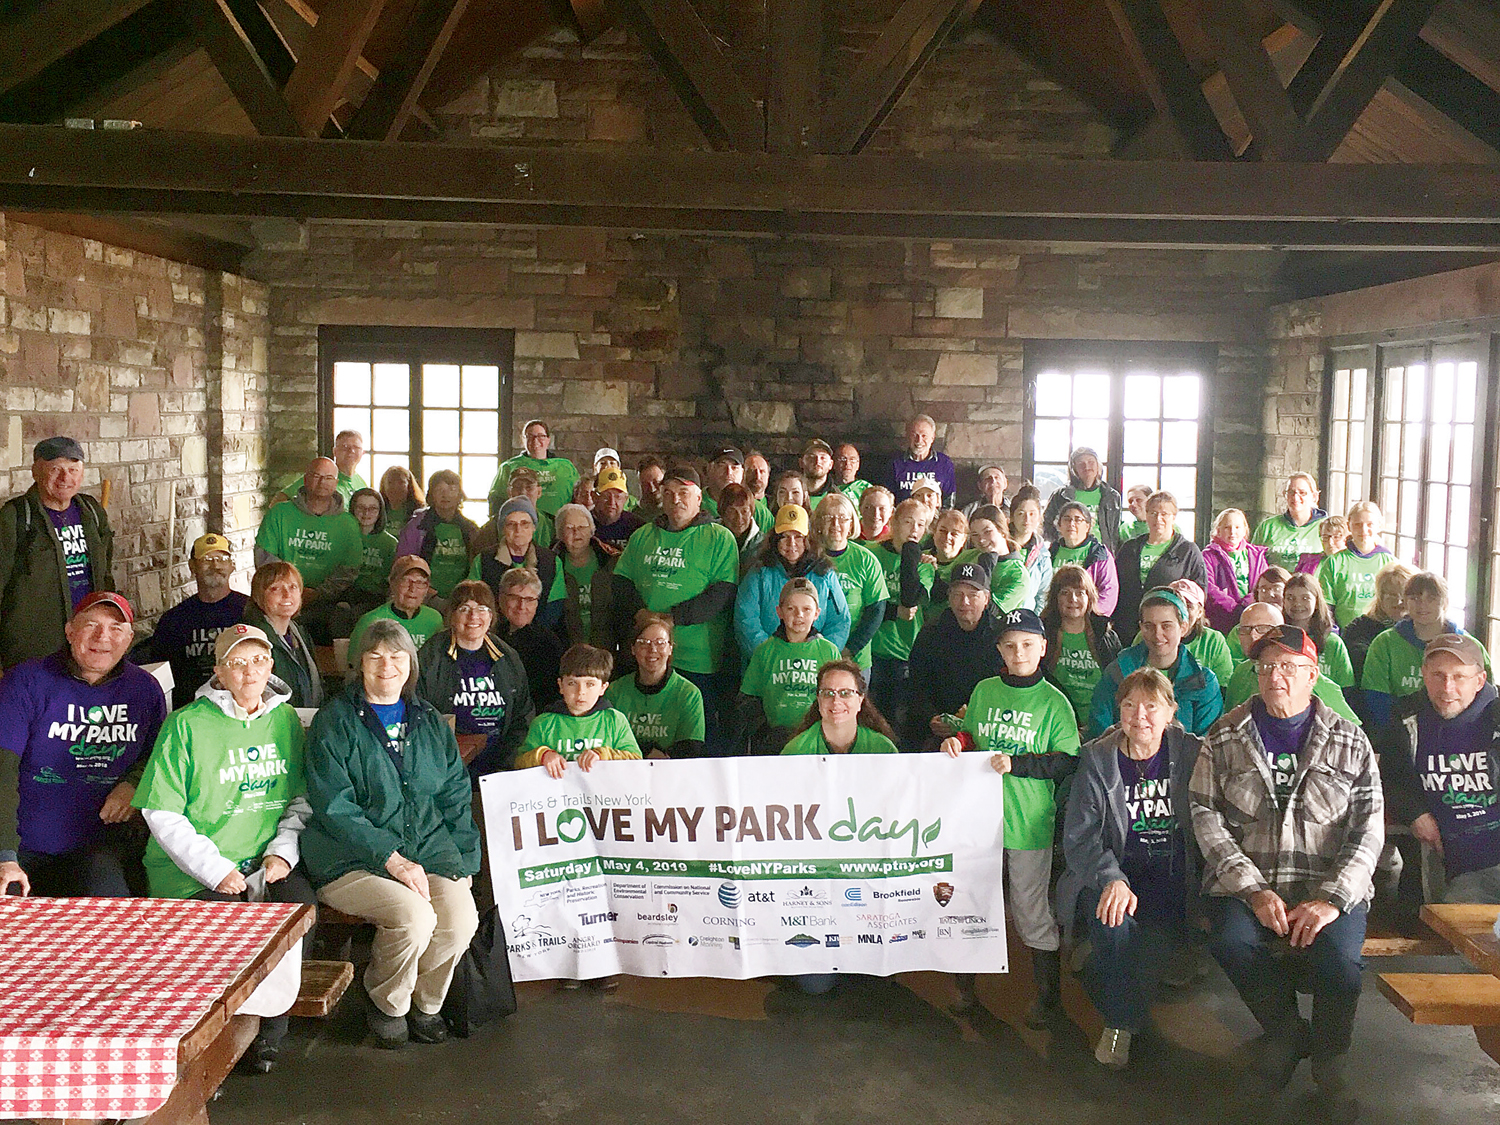 Over 75 volunteers attended this year's I Love My Park Day in Hamlin.